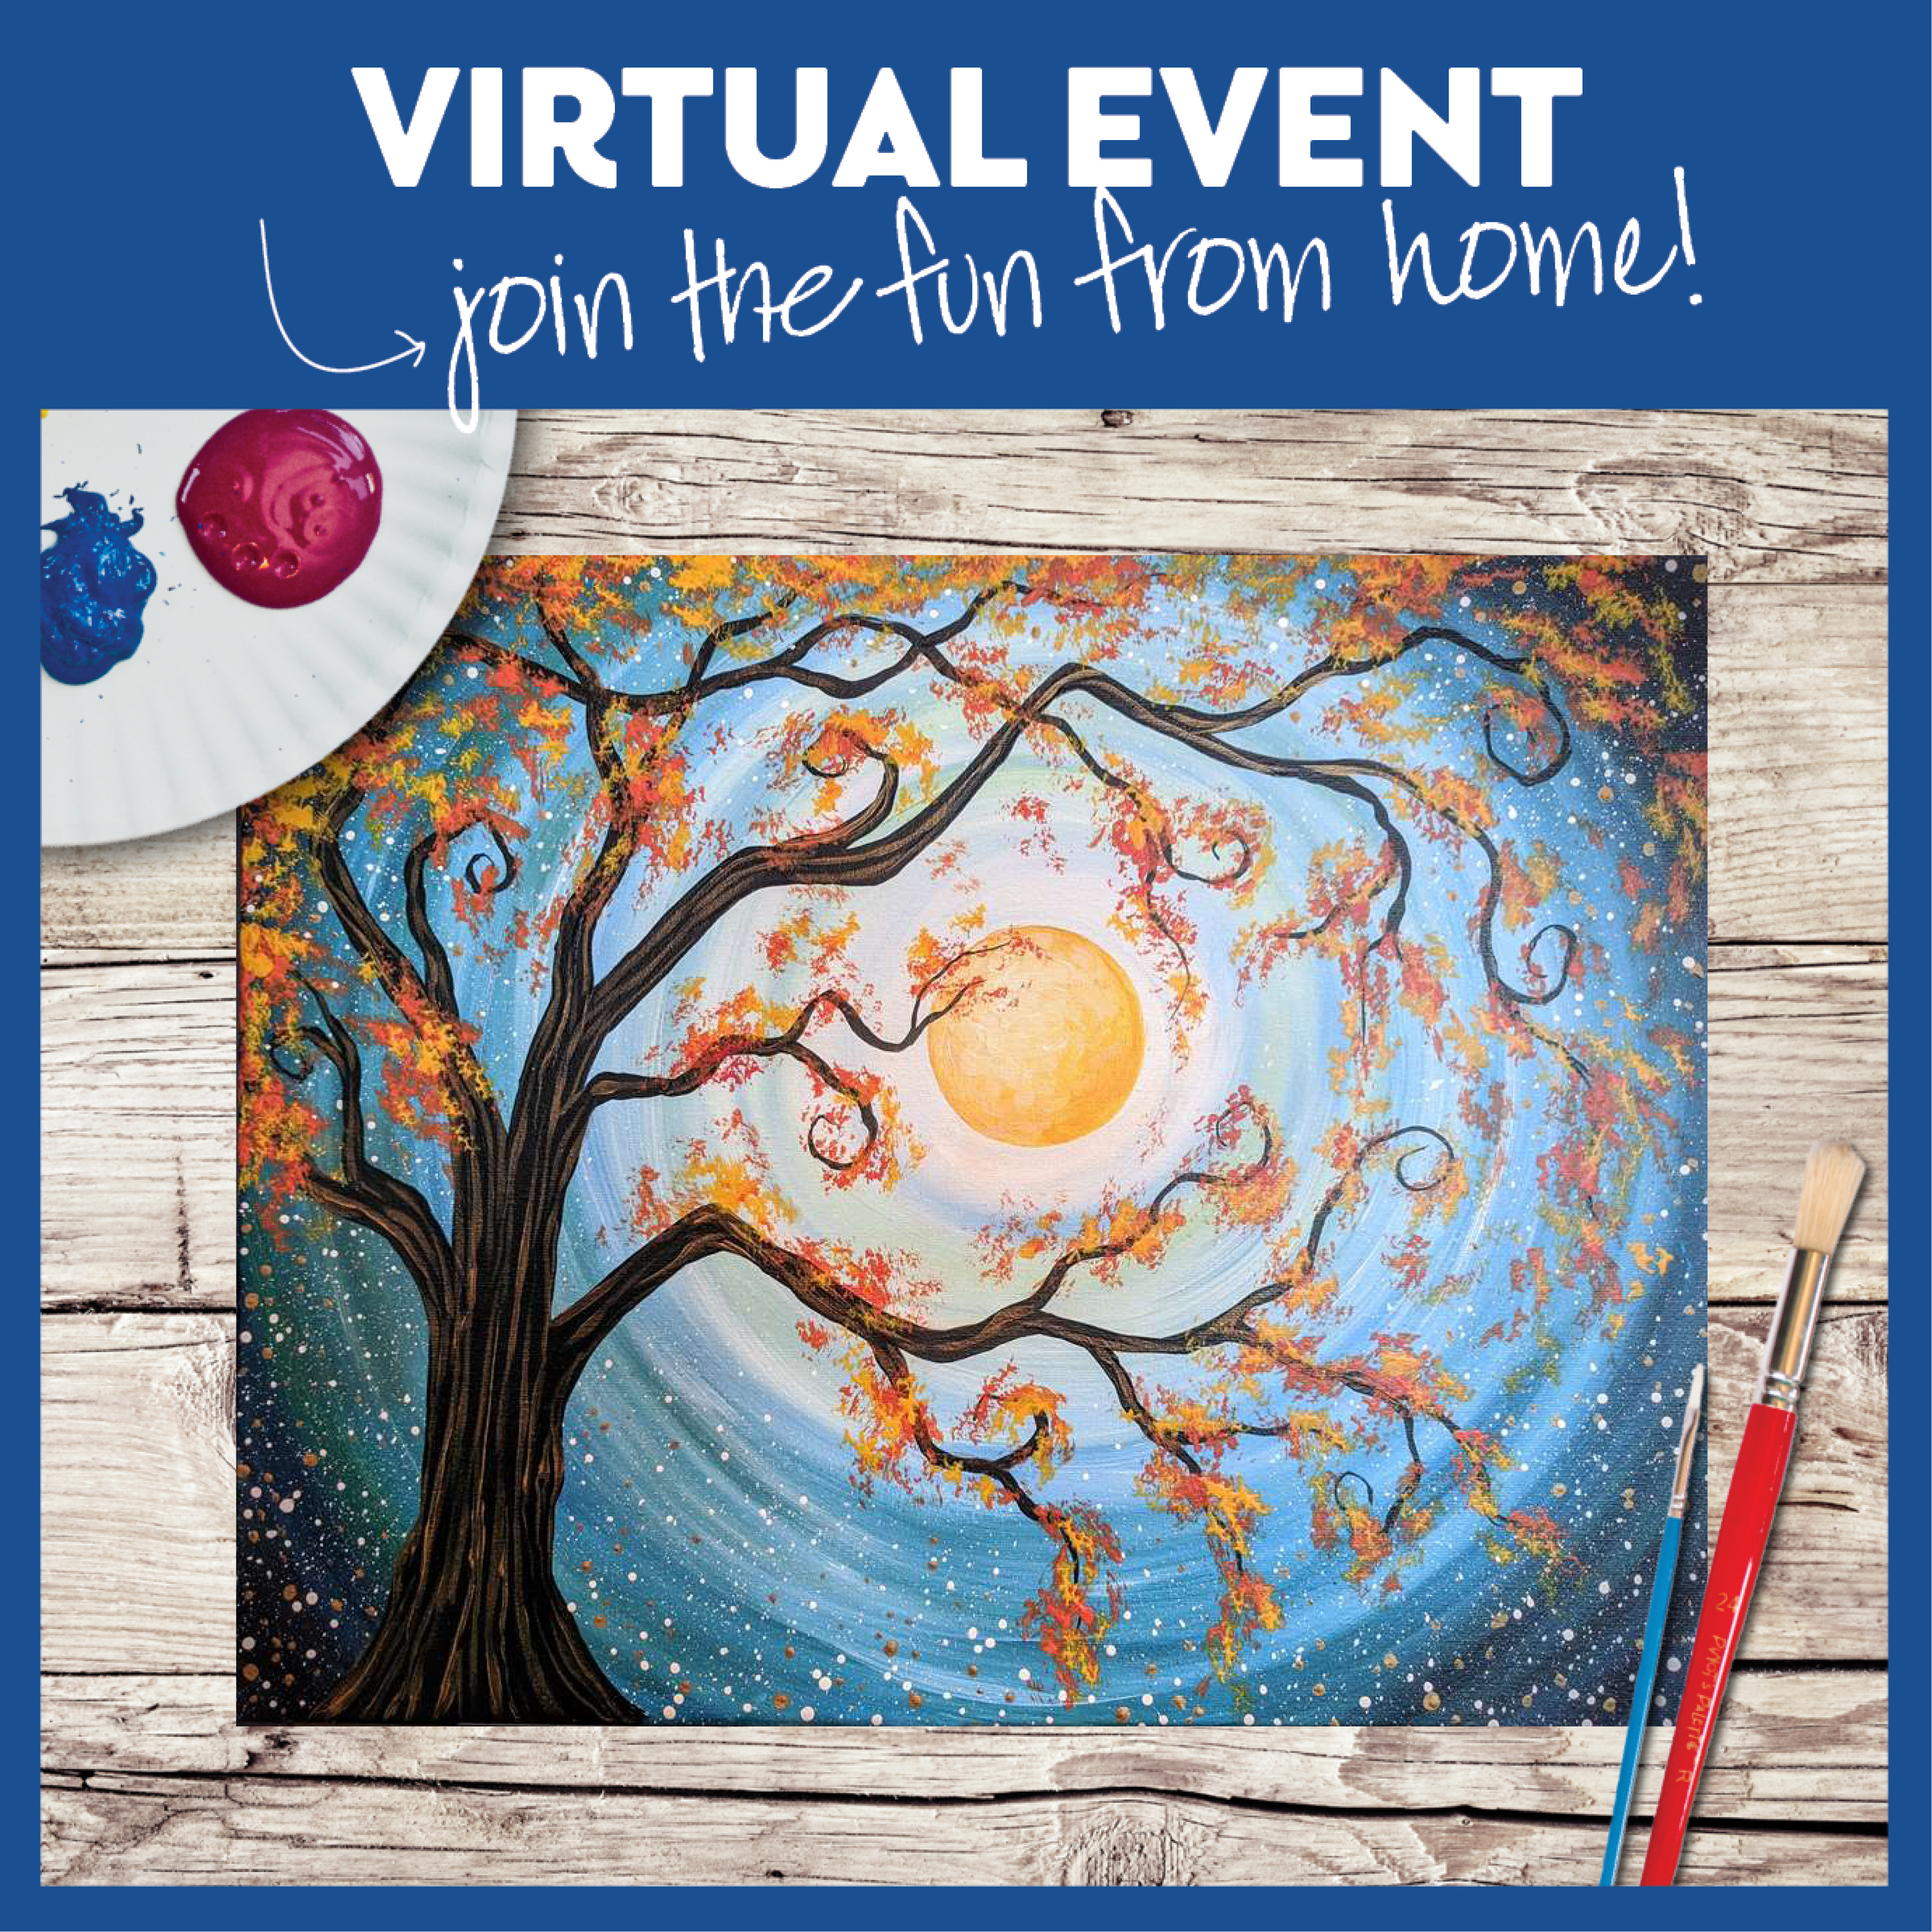 LIVE INTERACTIVE VIRTUAL CLASS - PAINTING KIT INCLUDED